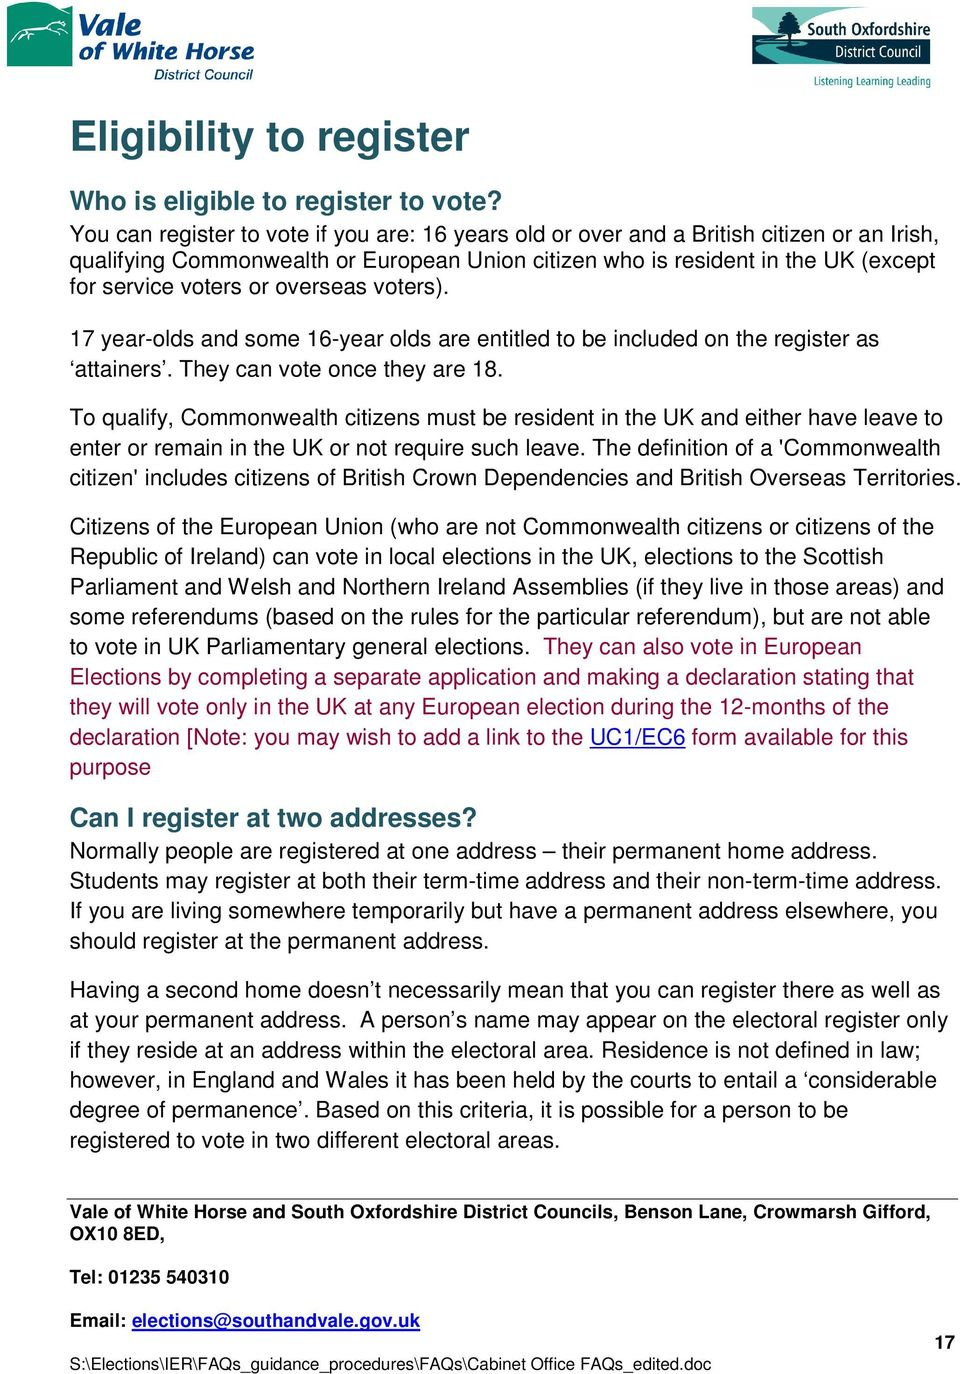 overseas voters). 17 year-olds and some 16-year olds are entitled to be included on the register as attainers. They can vote once they are 18.